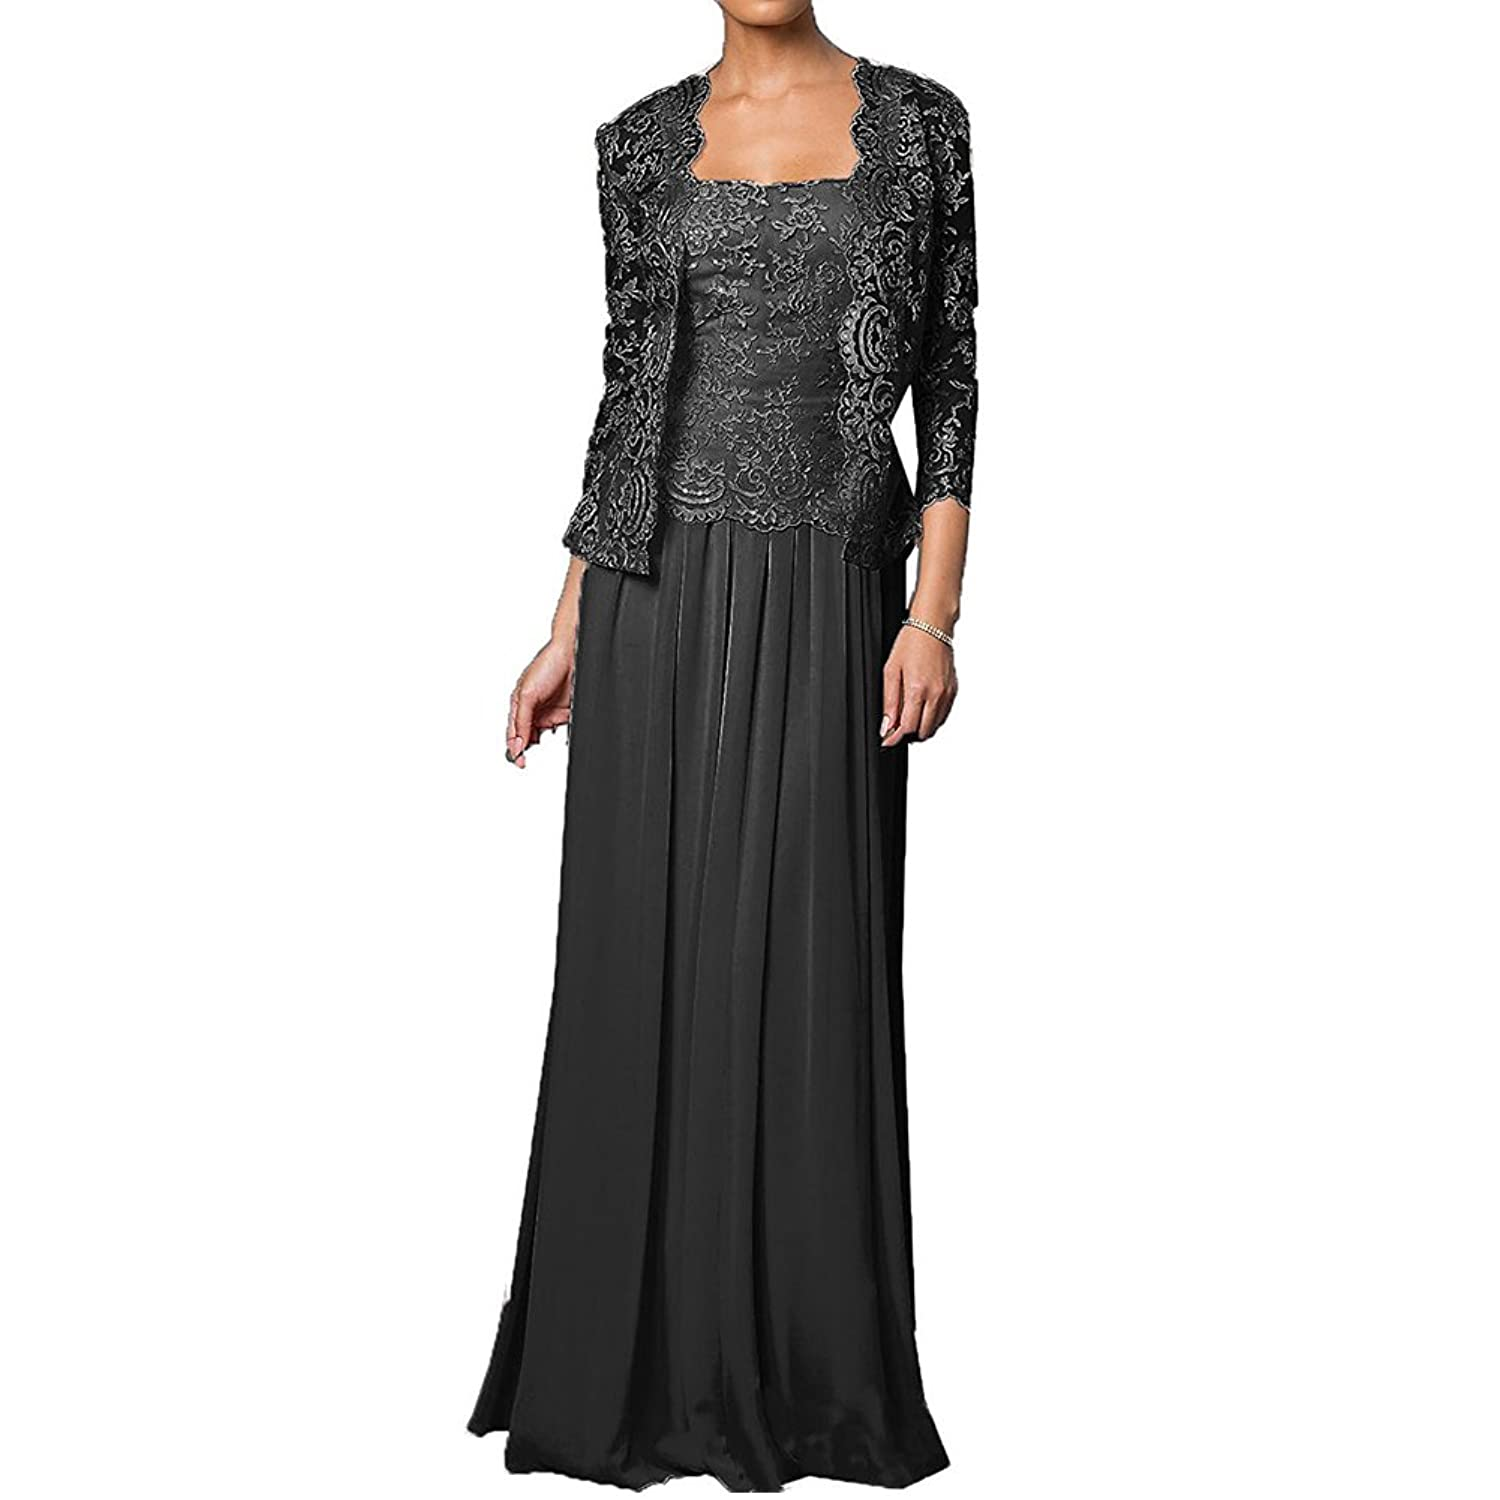 H.S.D Mother of the Bride Dress Lace Long Formal Gowns with Jacket ...